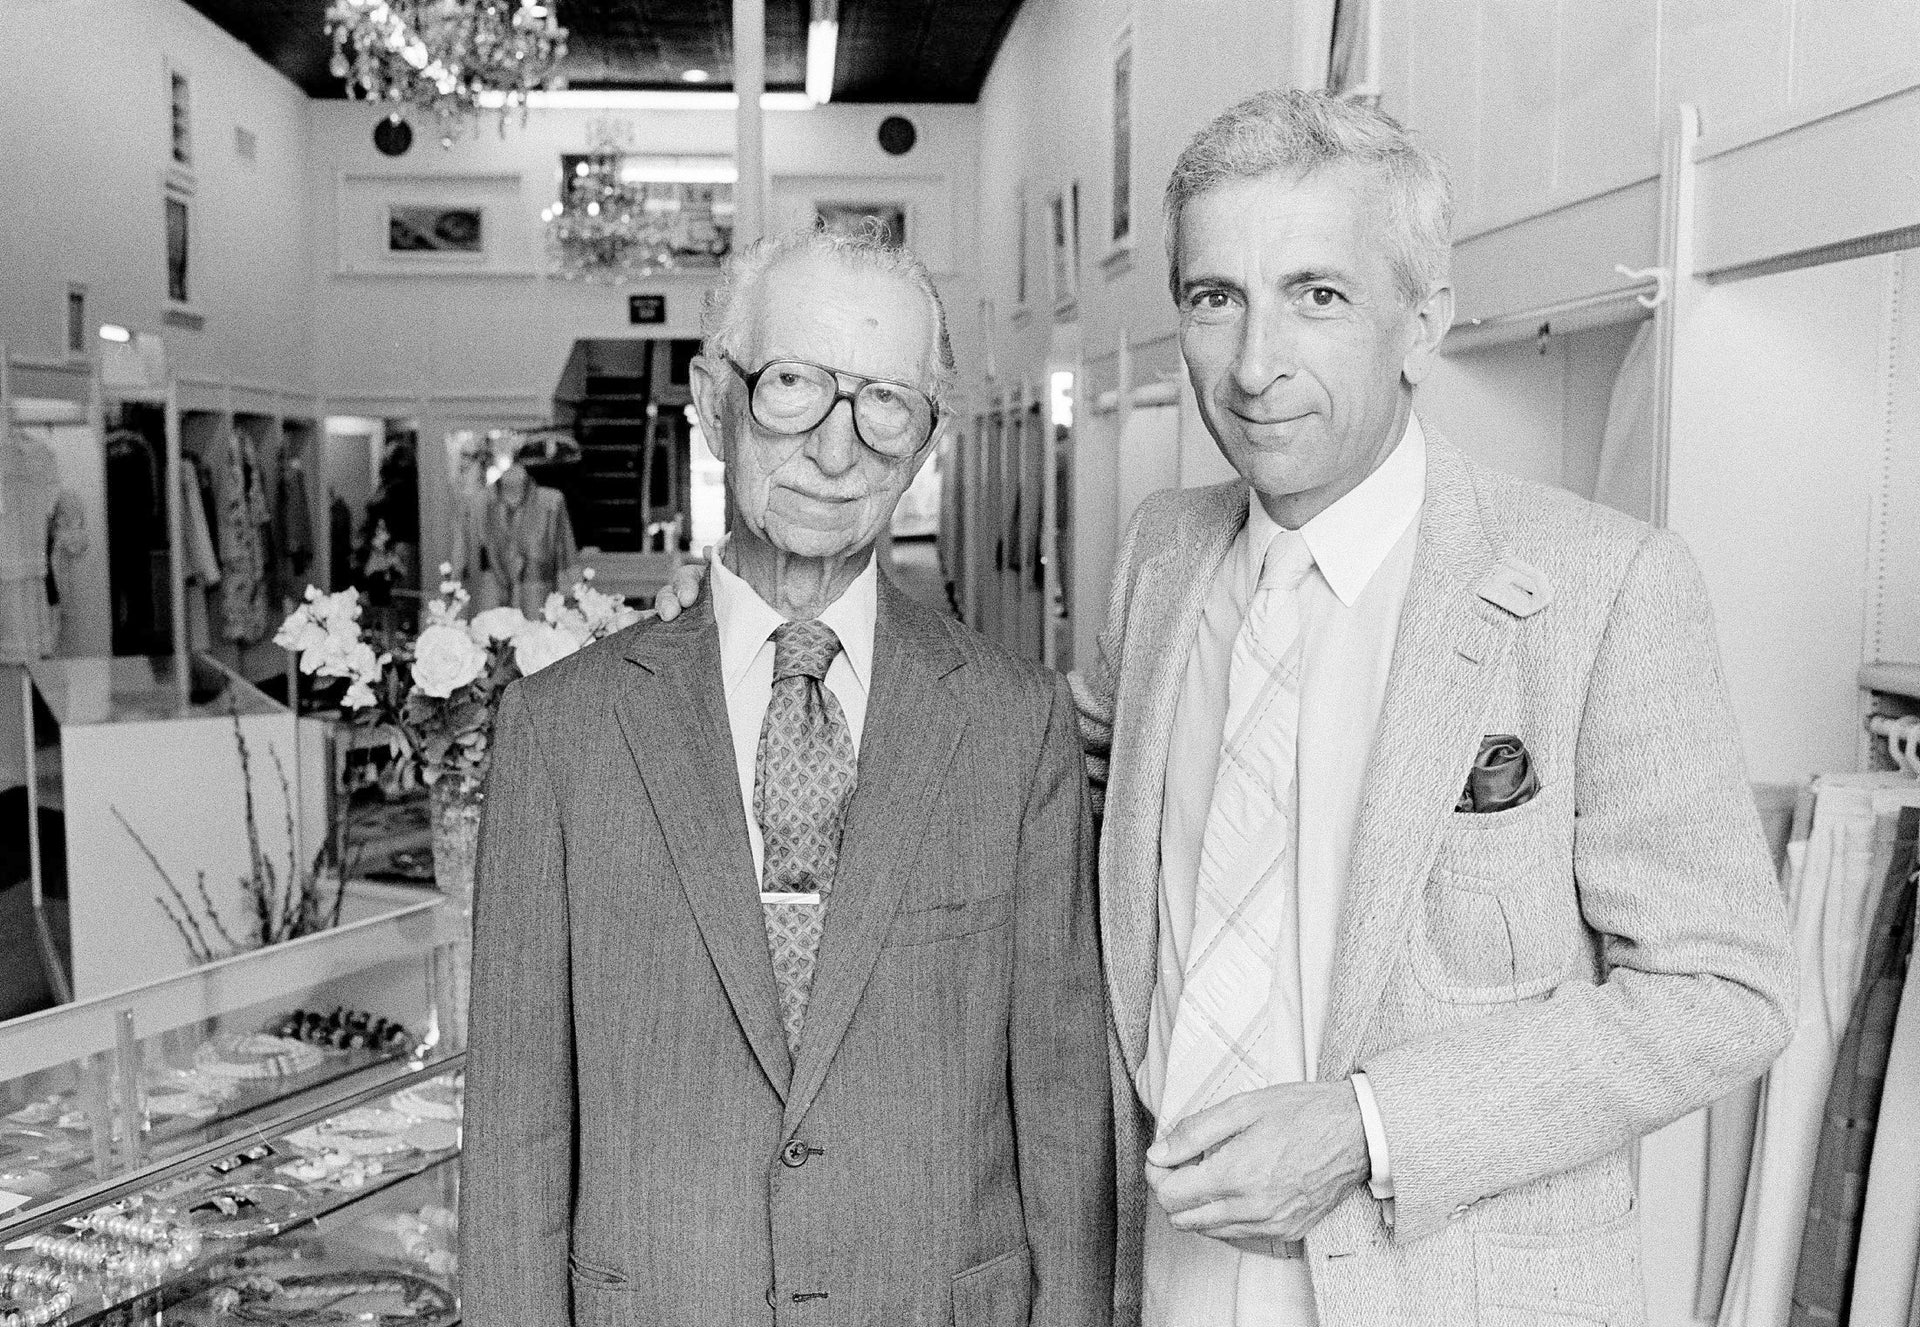 Author Gay Talese poses with his father, Joseph Talese, at his father's dress shop in Ocean City, N.J., in May 1986.